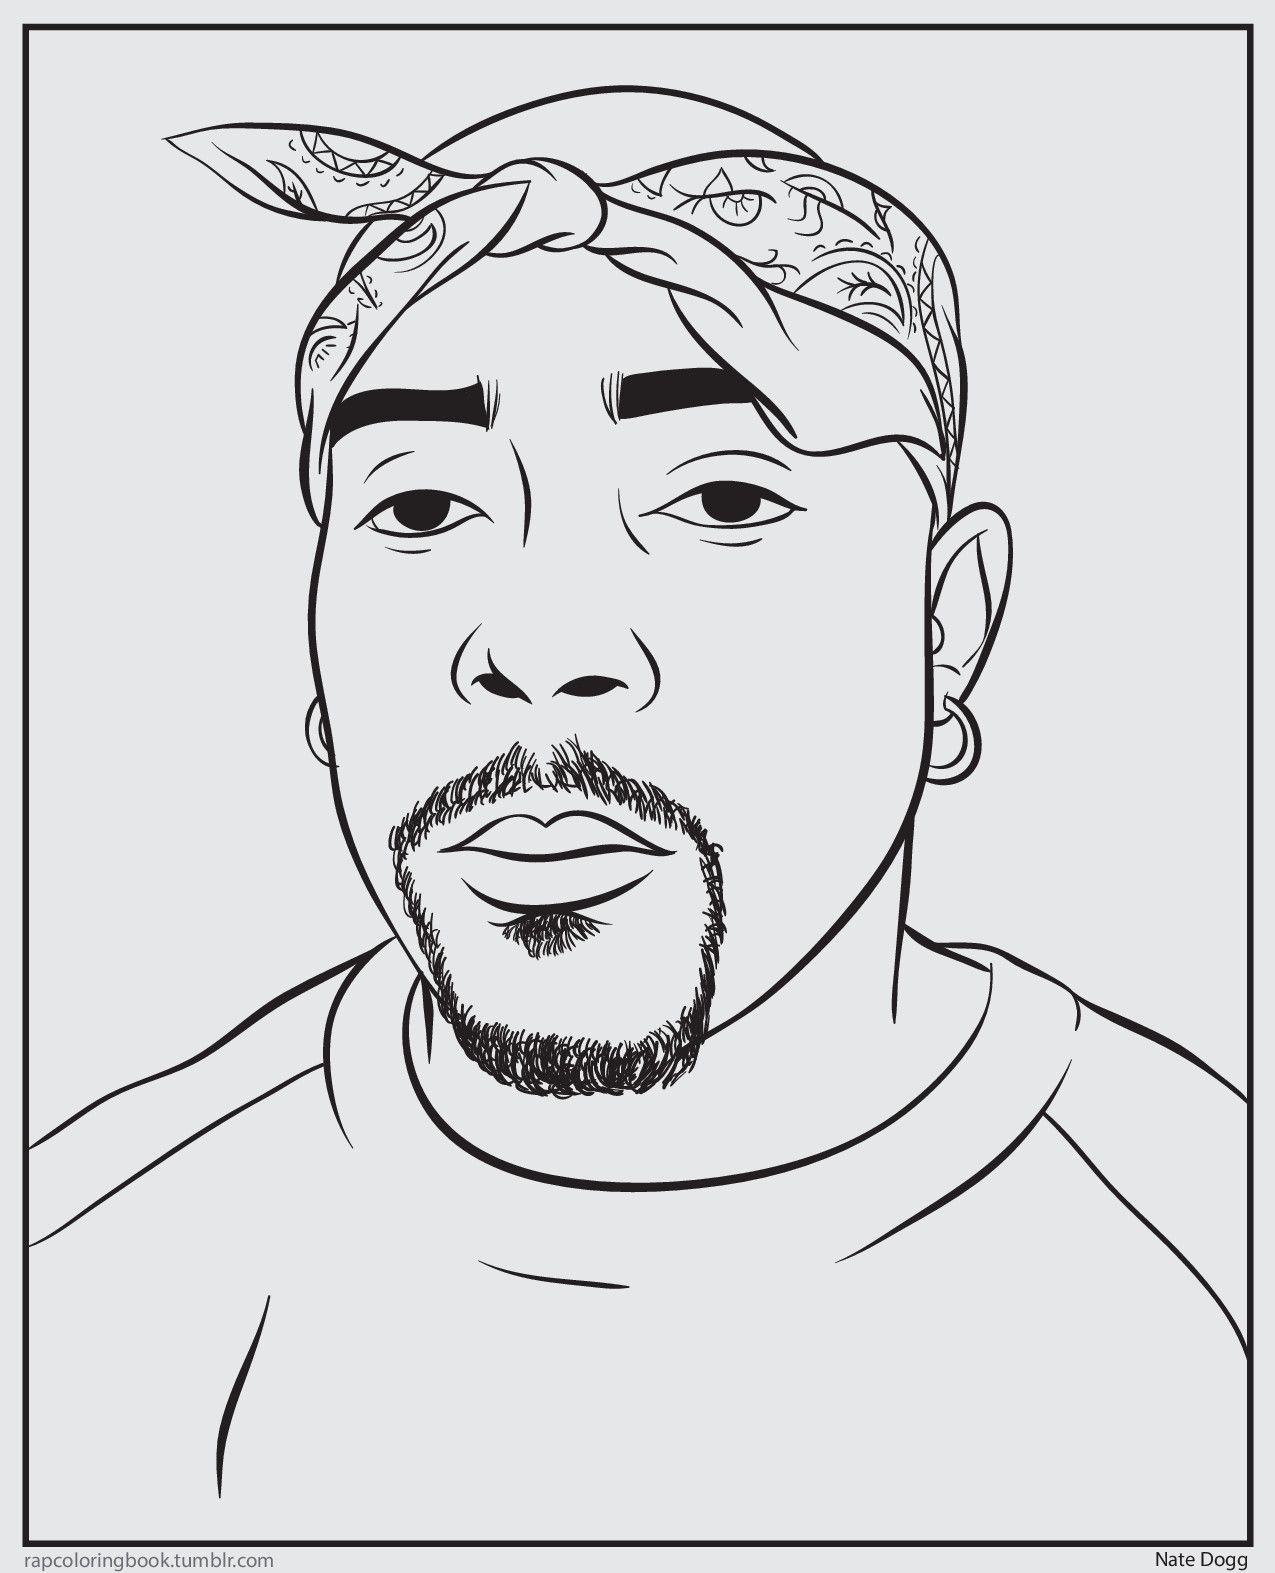 Bun B S Jumbo Coloring And Rap Activity Tumblr Click Here To Download The Nate Dogg Coloring Nate Dogg Art Nate Dogg Hip Hop Art